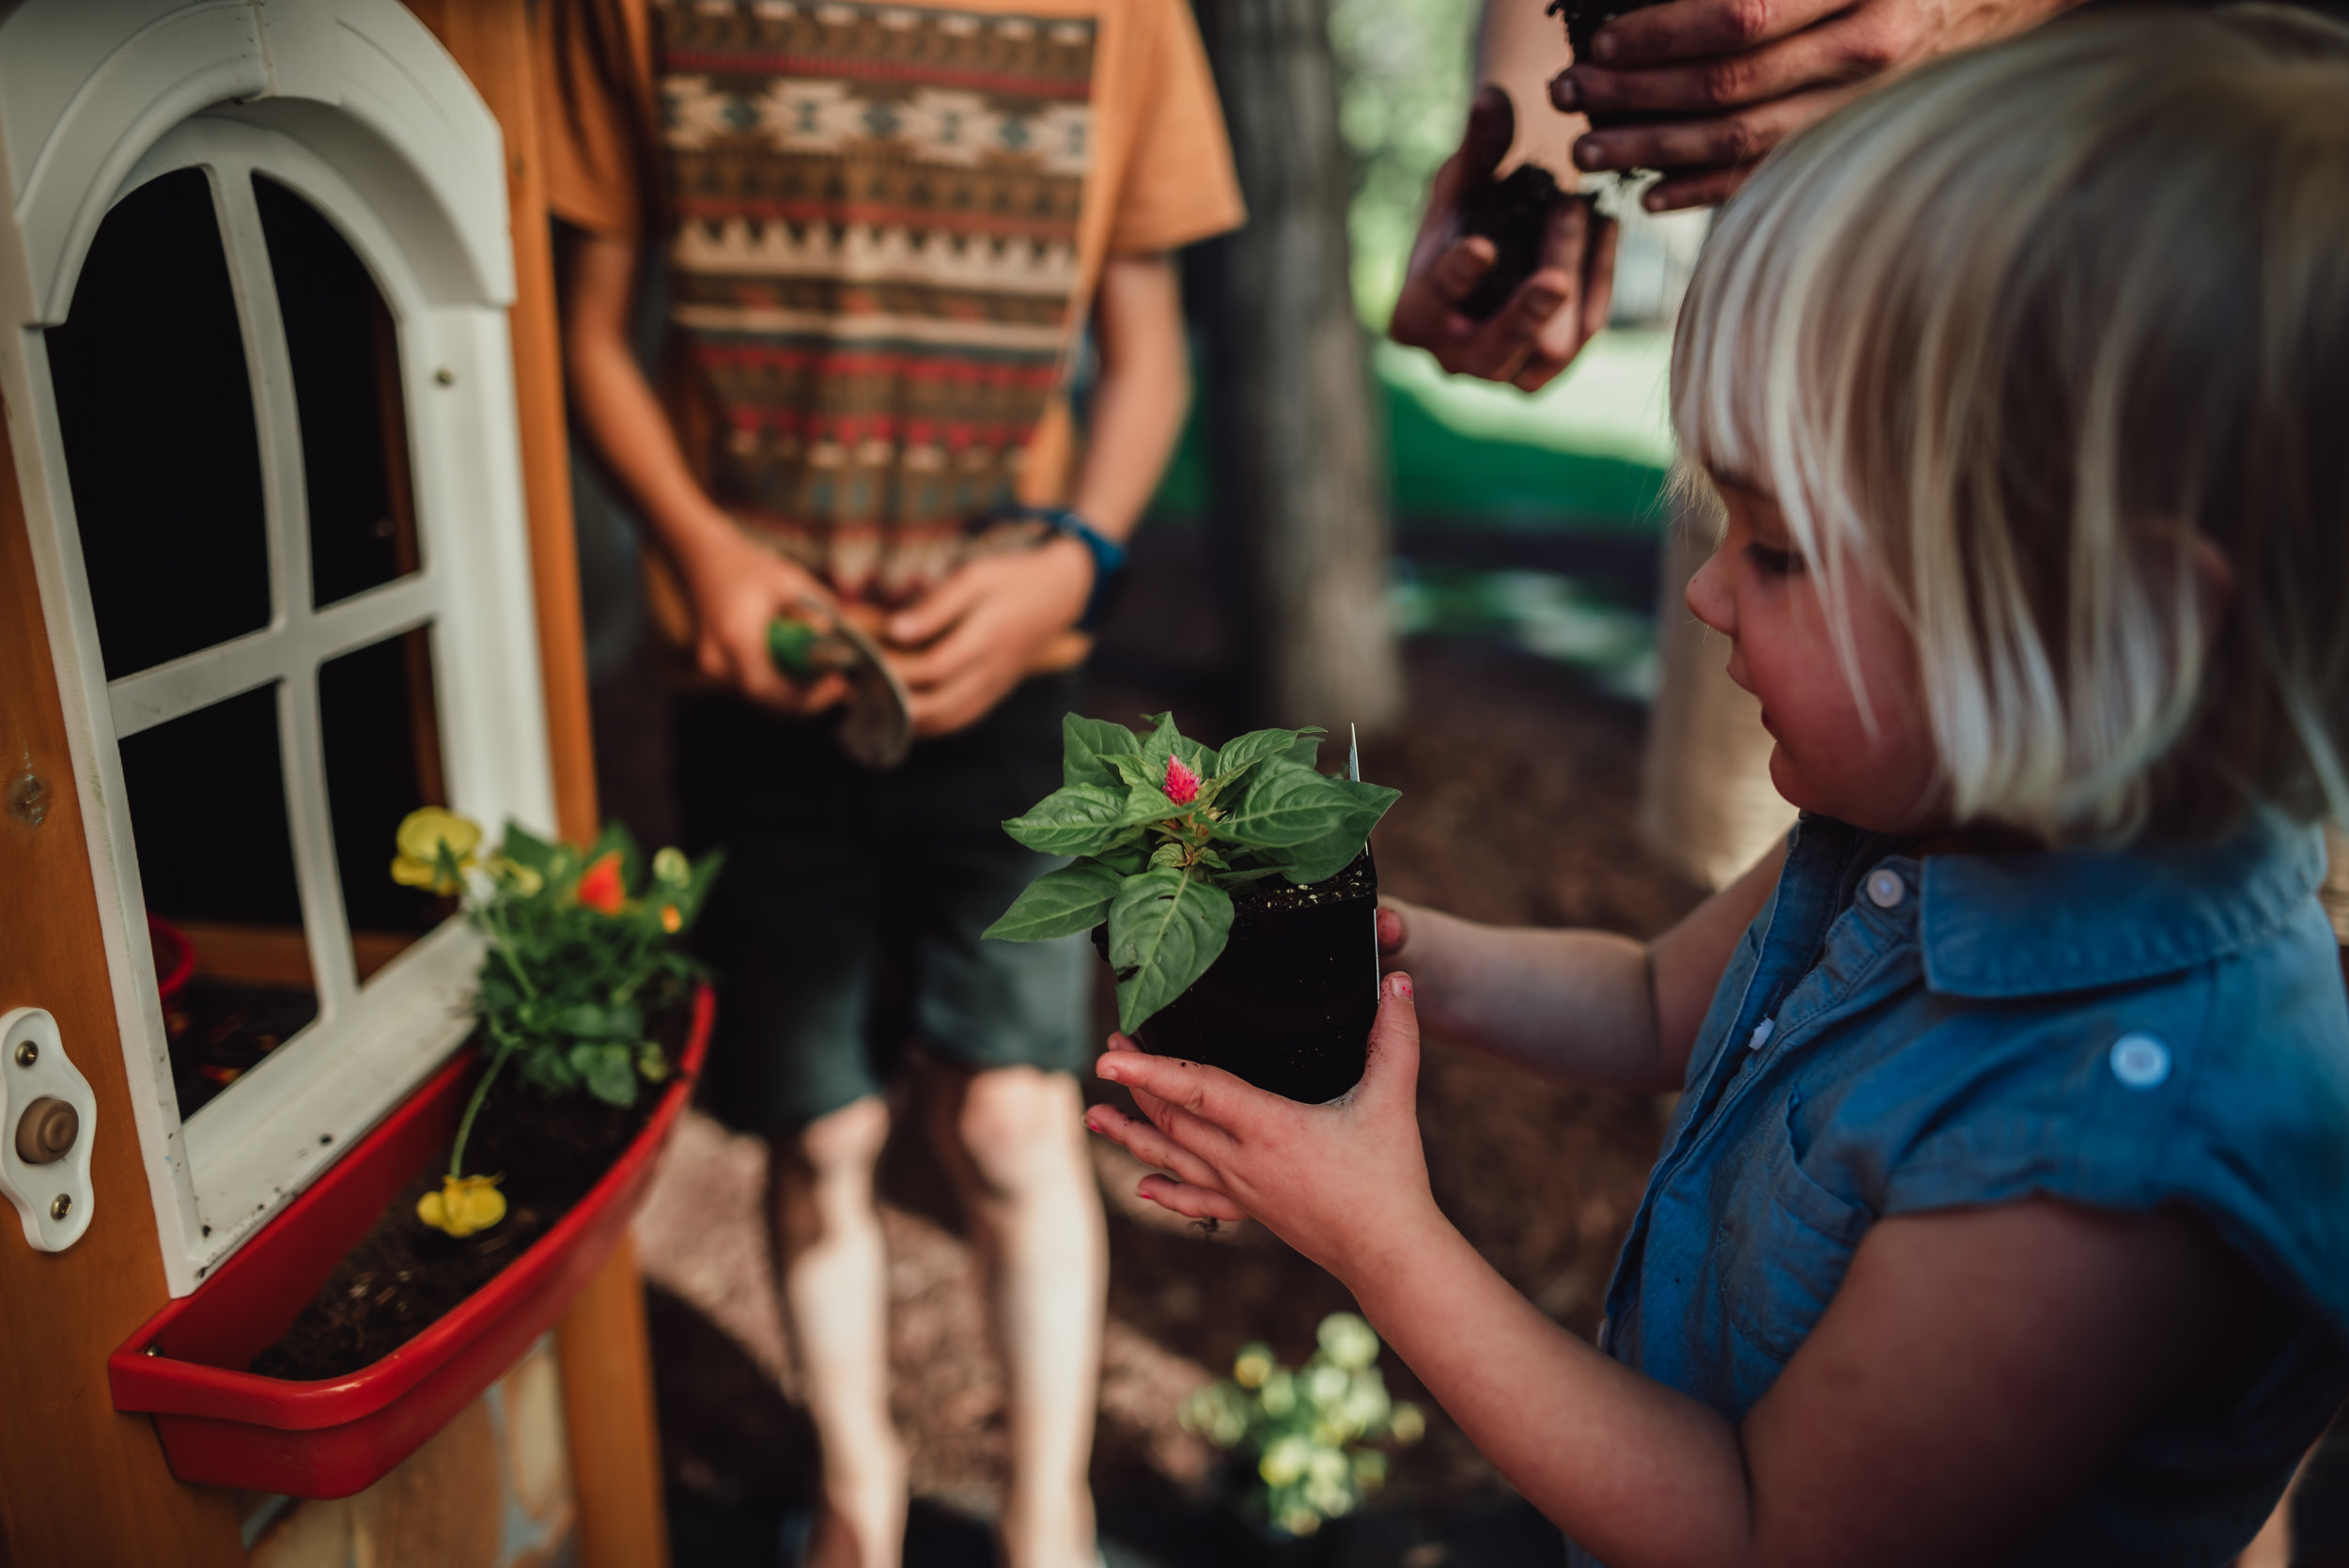 colorado springs family lifestyle gardening photography-52.jpg